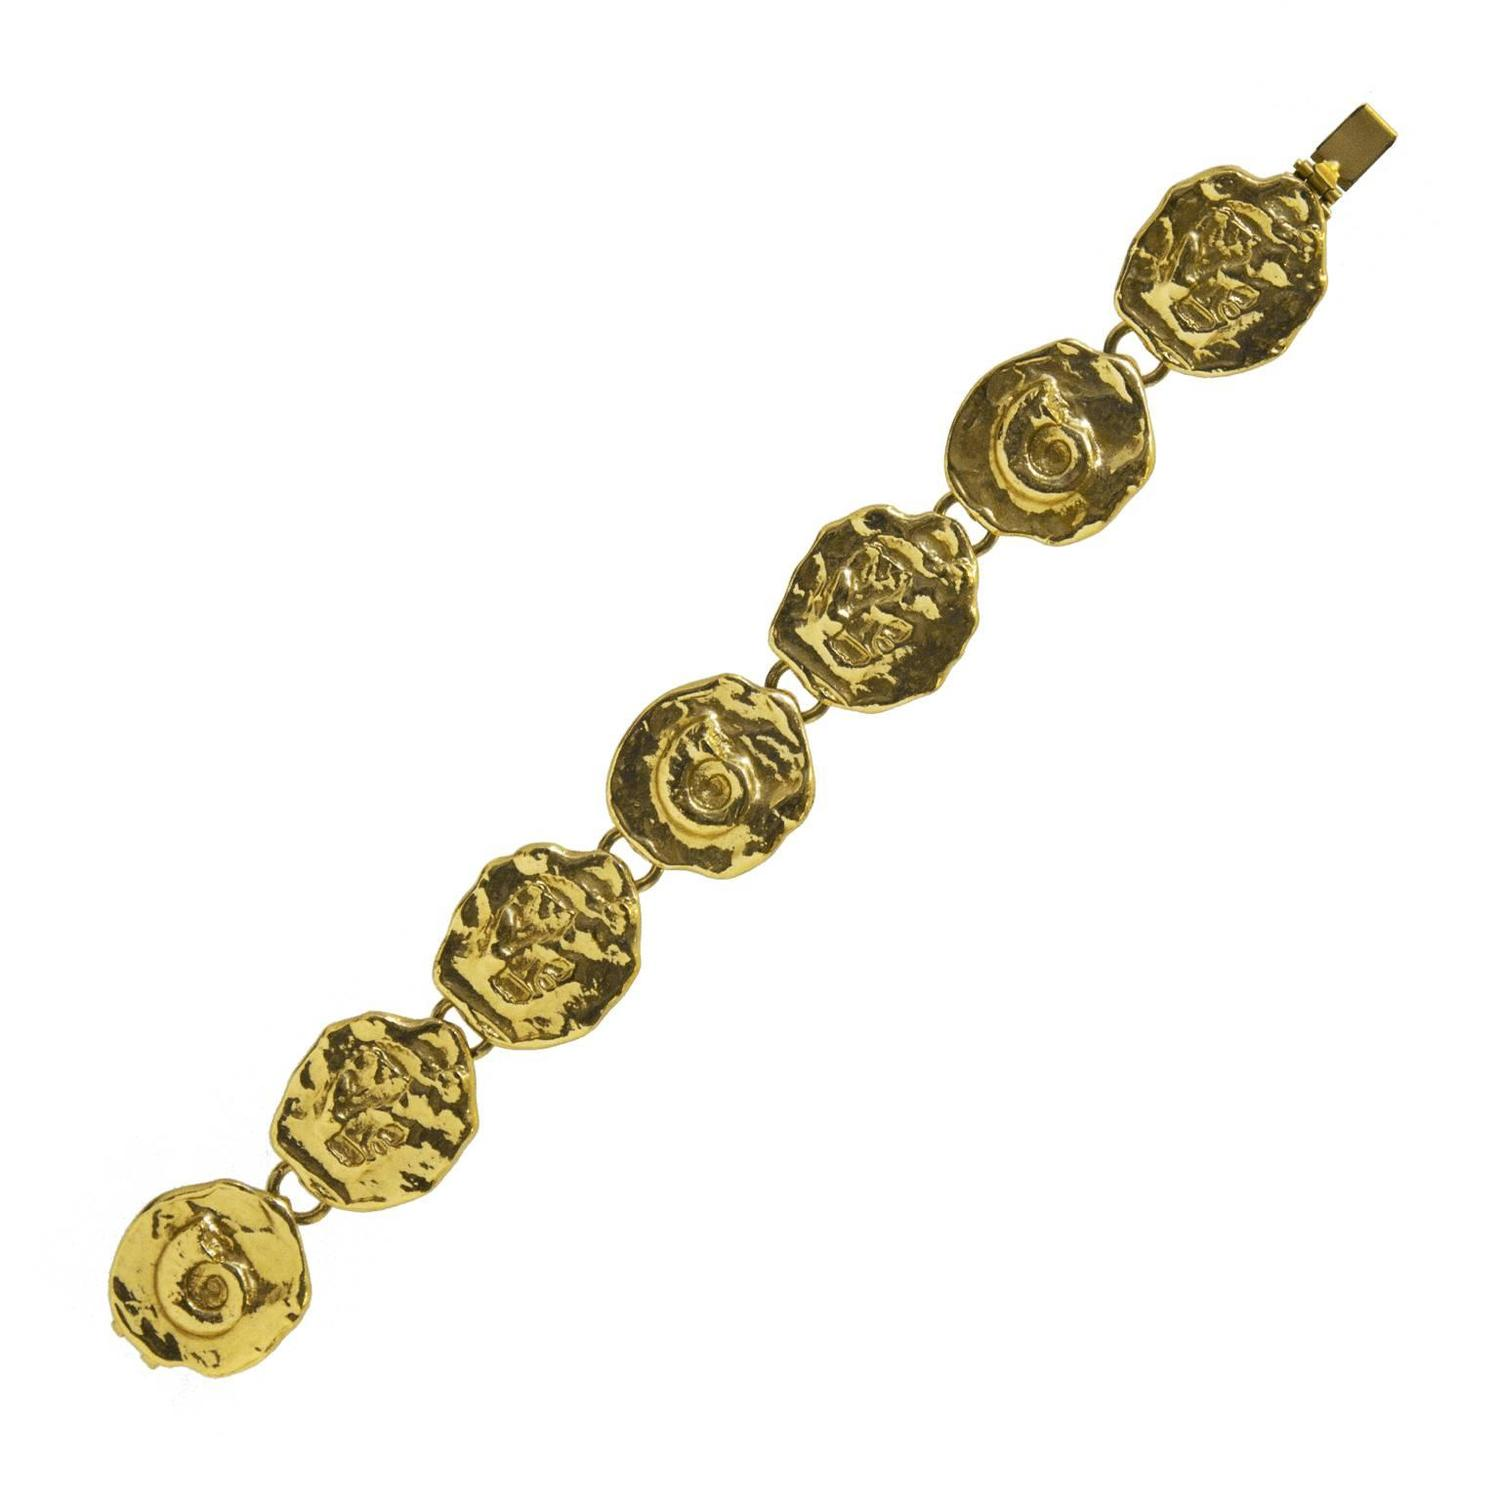 1980 39 s yves saint laurent ysl gold abstract medallion bracelet for sale at 1stdibs - Bracelet yves saint laurent ...